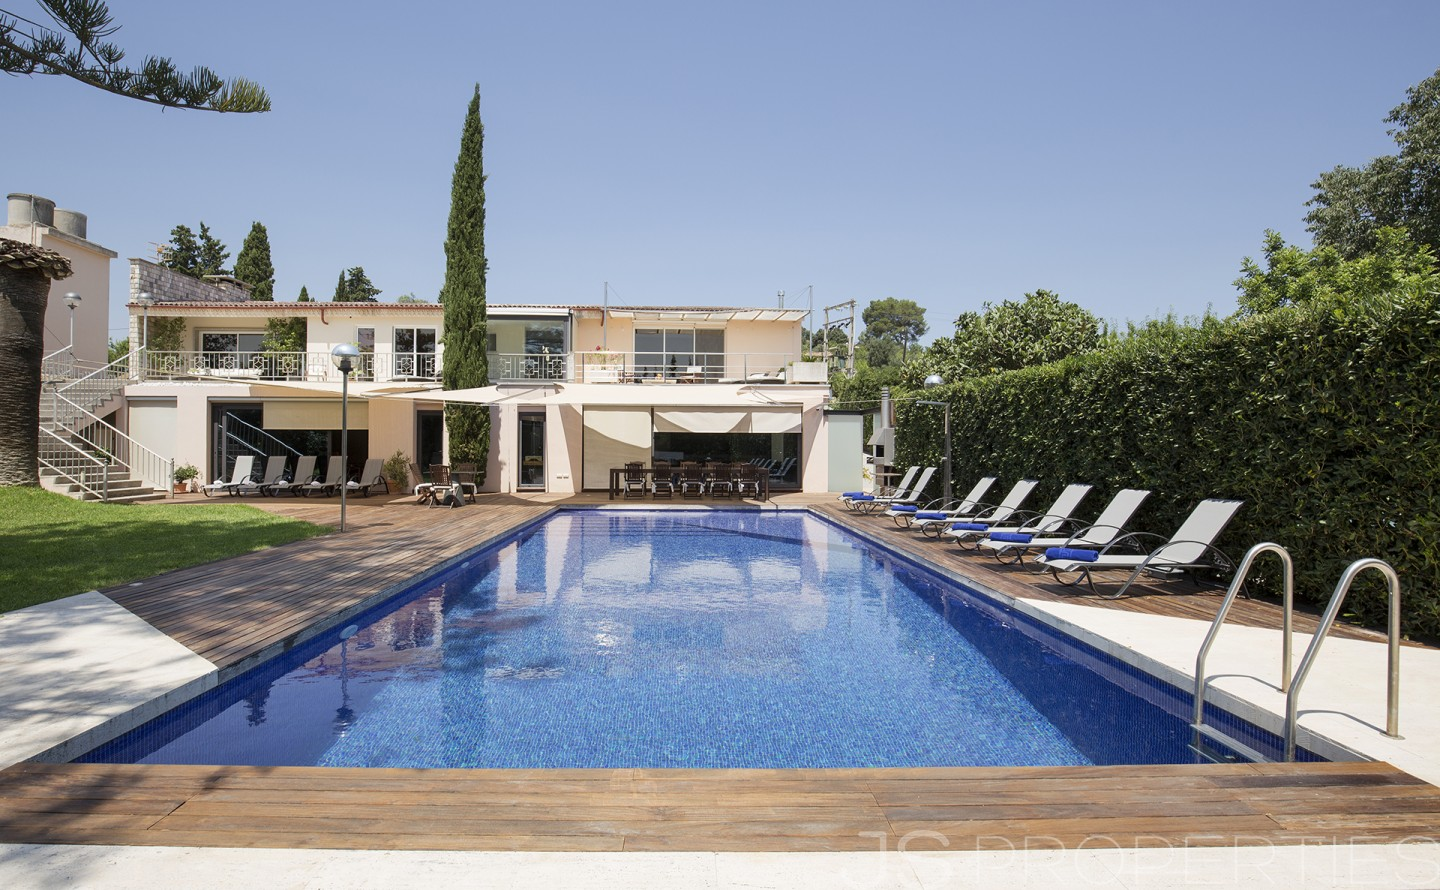 INCOMPARABLE COUNTRY HOUSE WITH SMARTHOME TECHNOLOGY